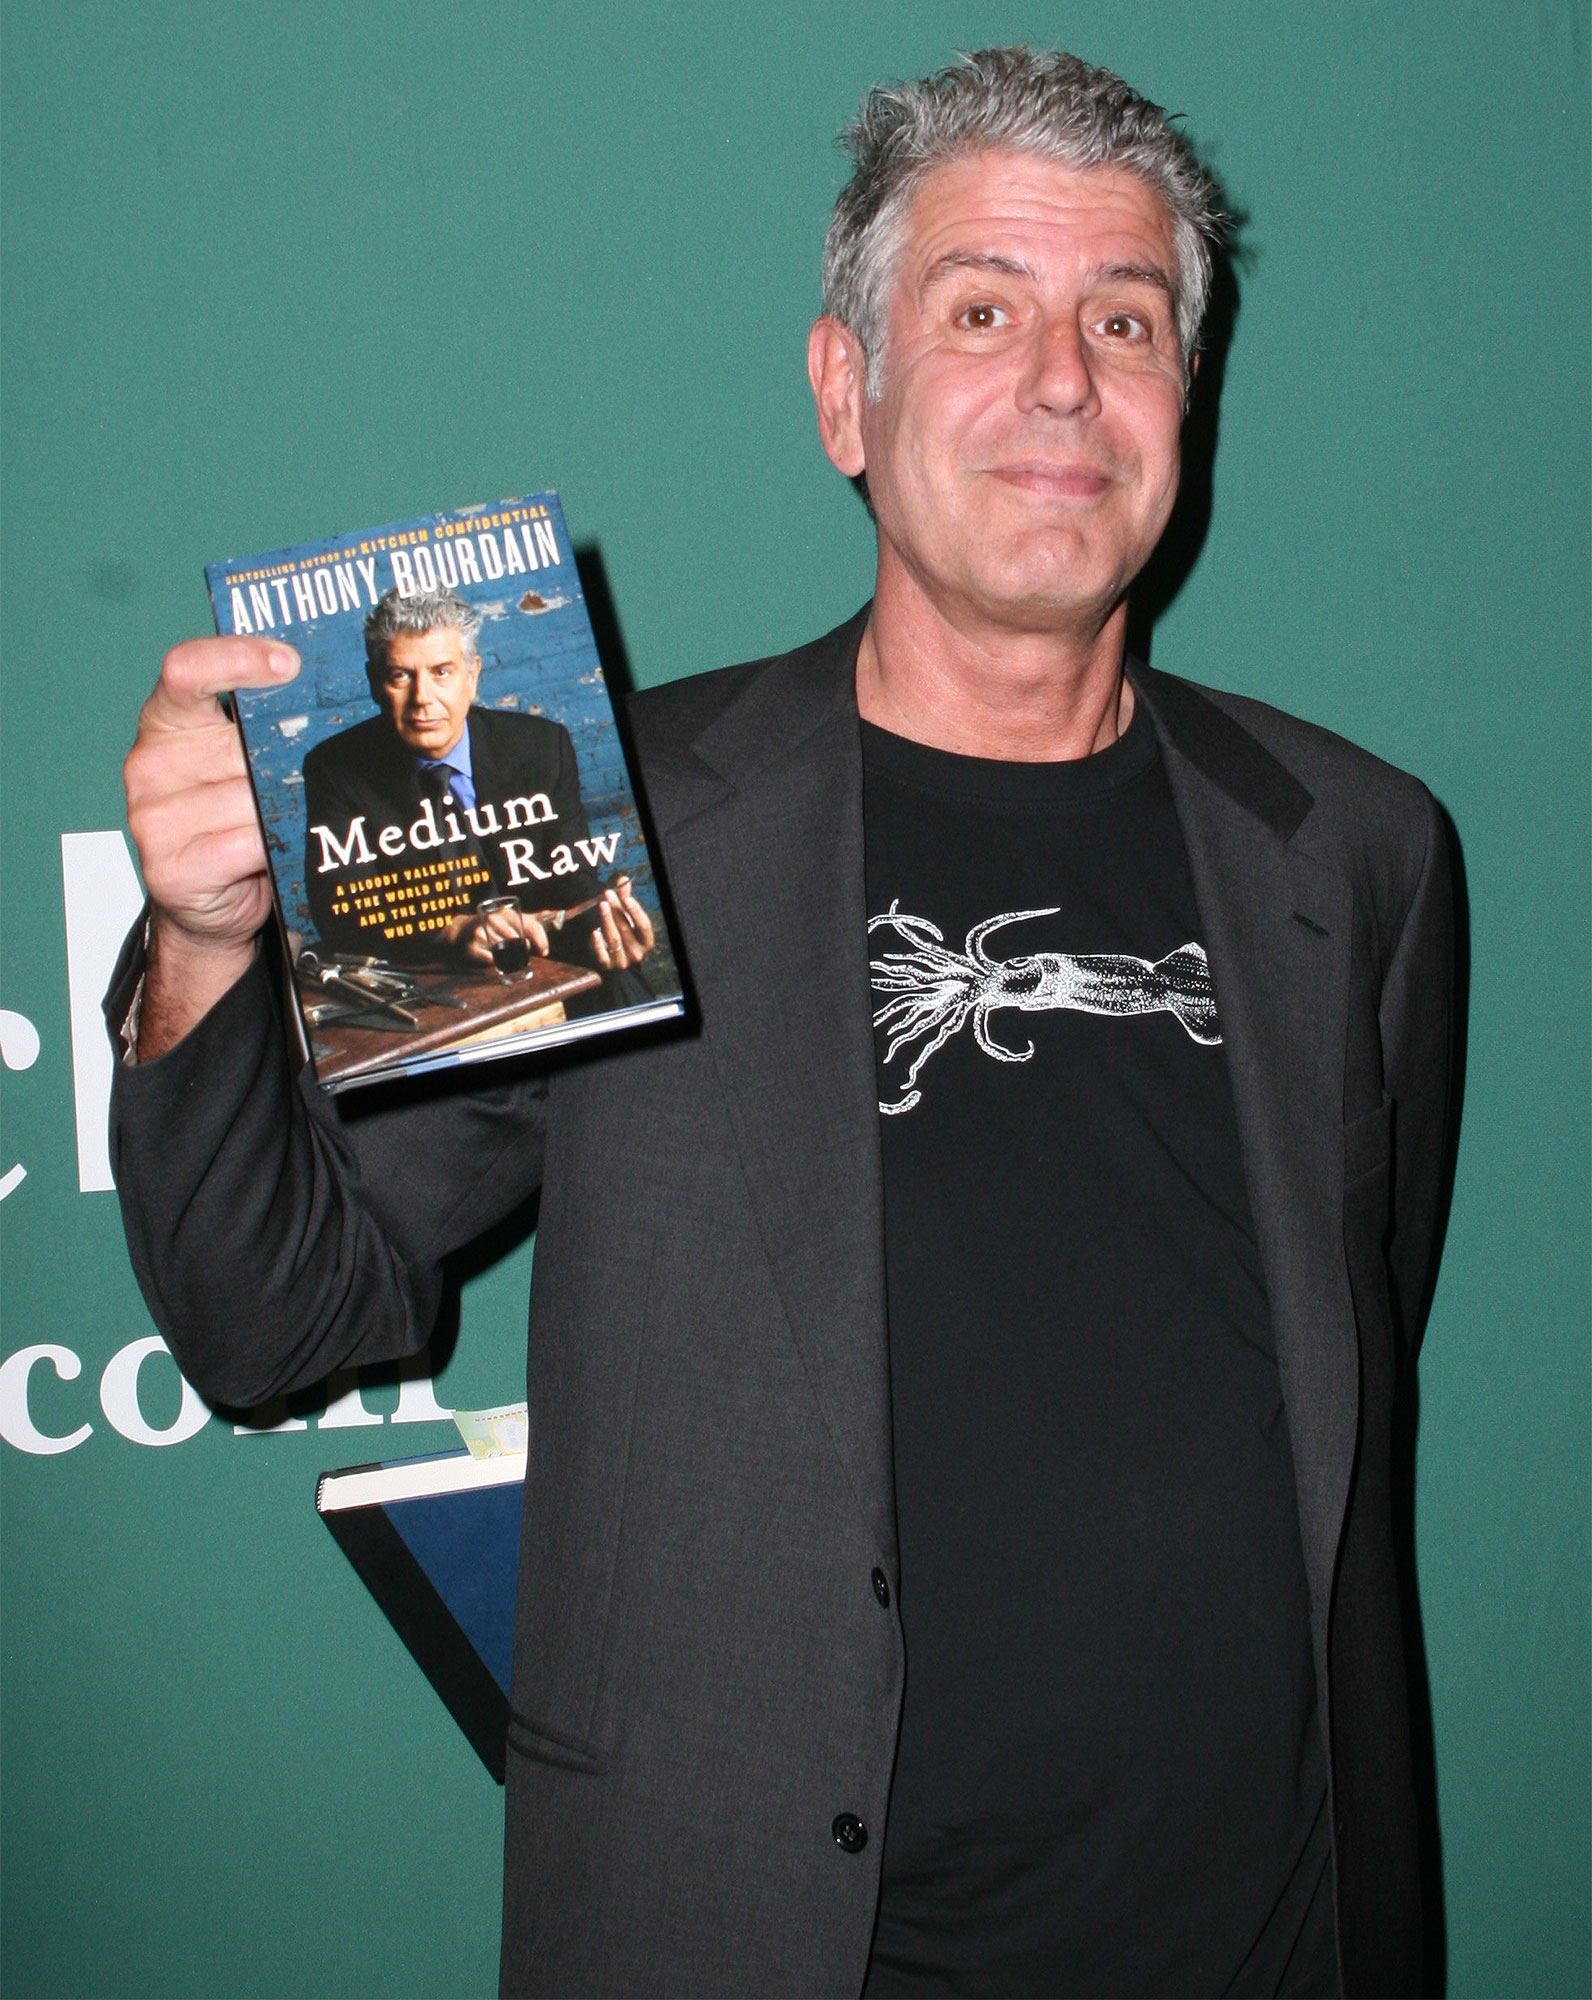 Anthony Bourdain Book Signing, New York, America - 08 Jun 2010